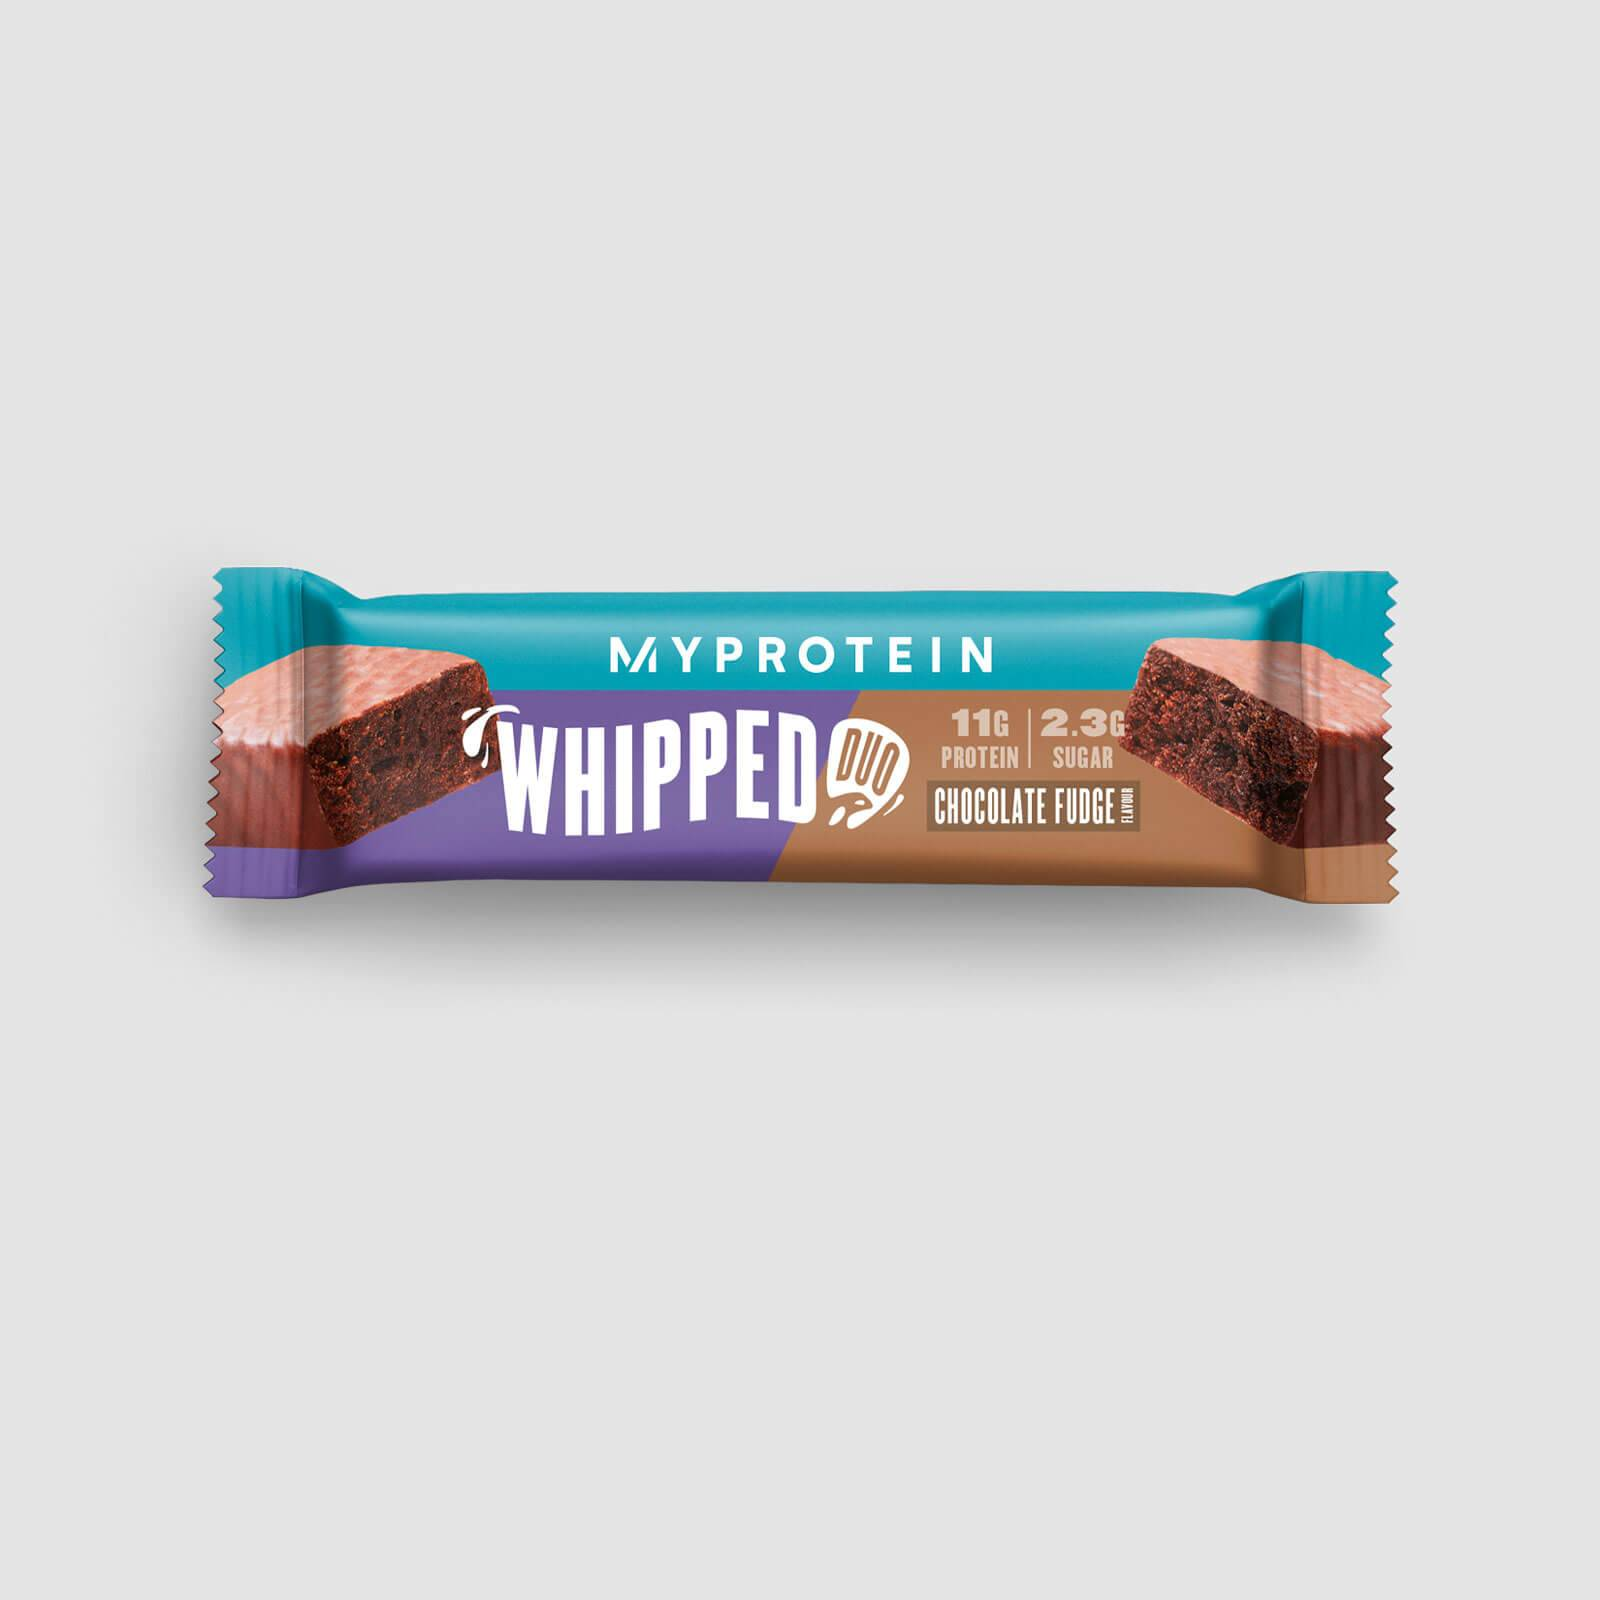 Myprotein Whipped Duo - 12 x 56g - Chocolate y Caramelo (Fudge)